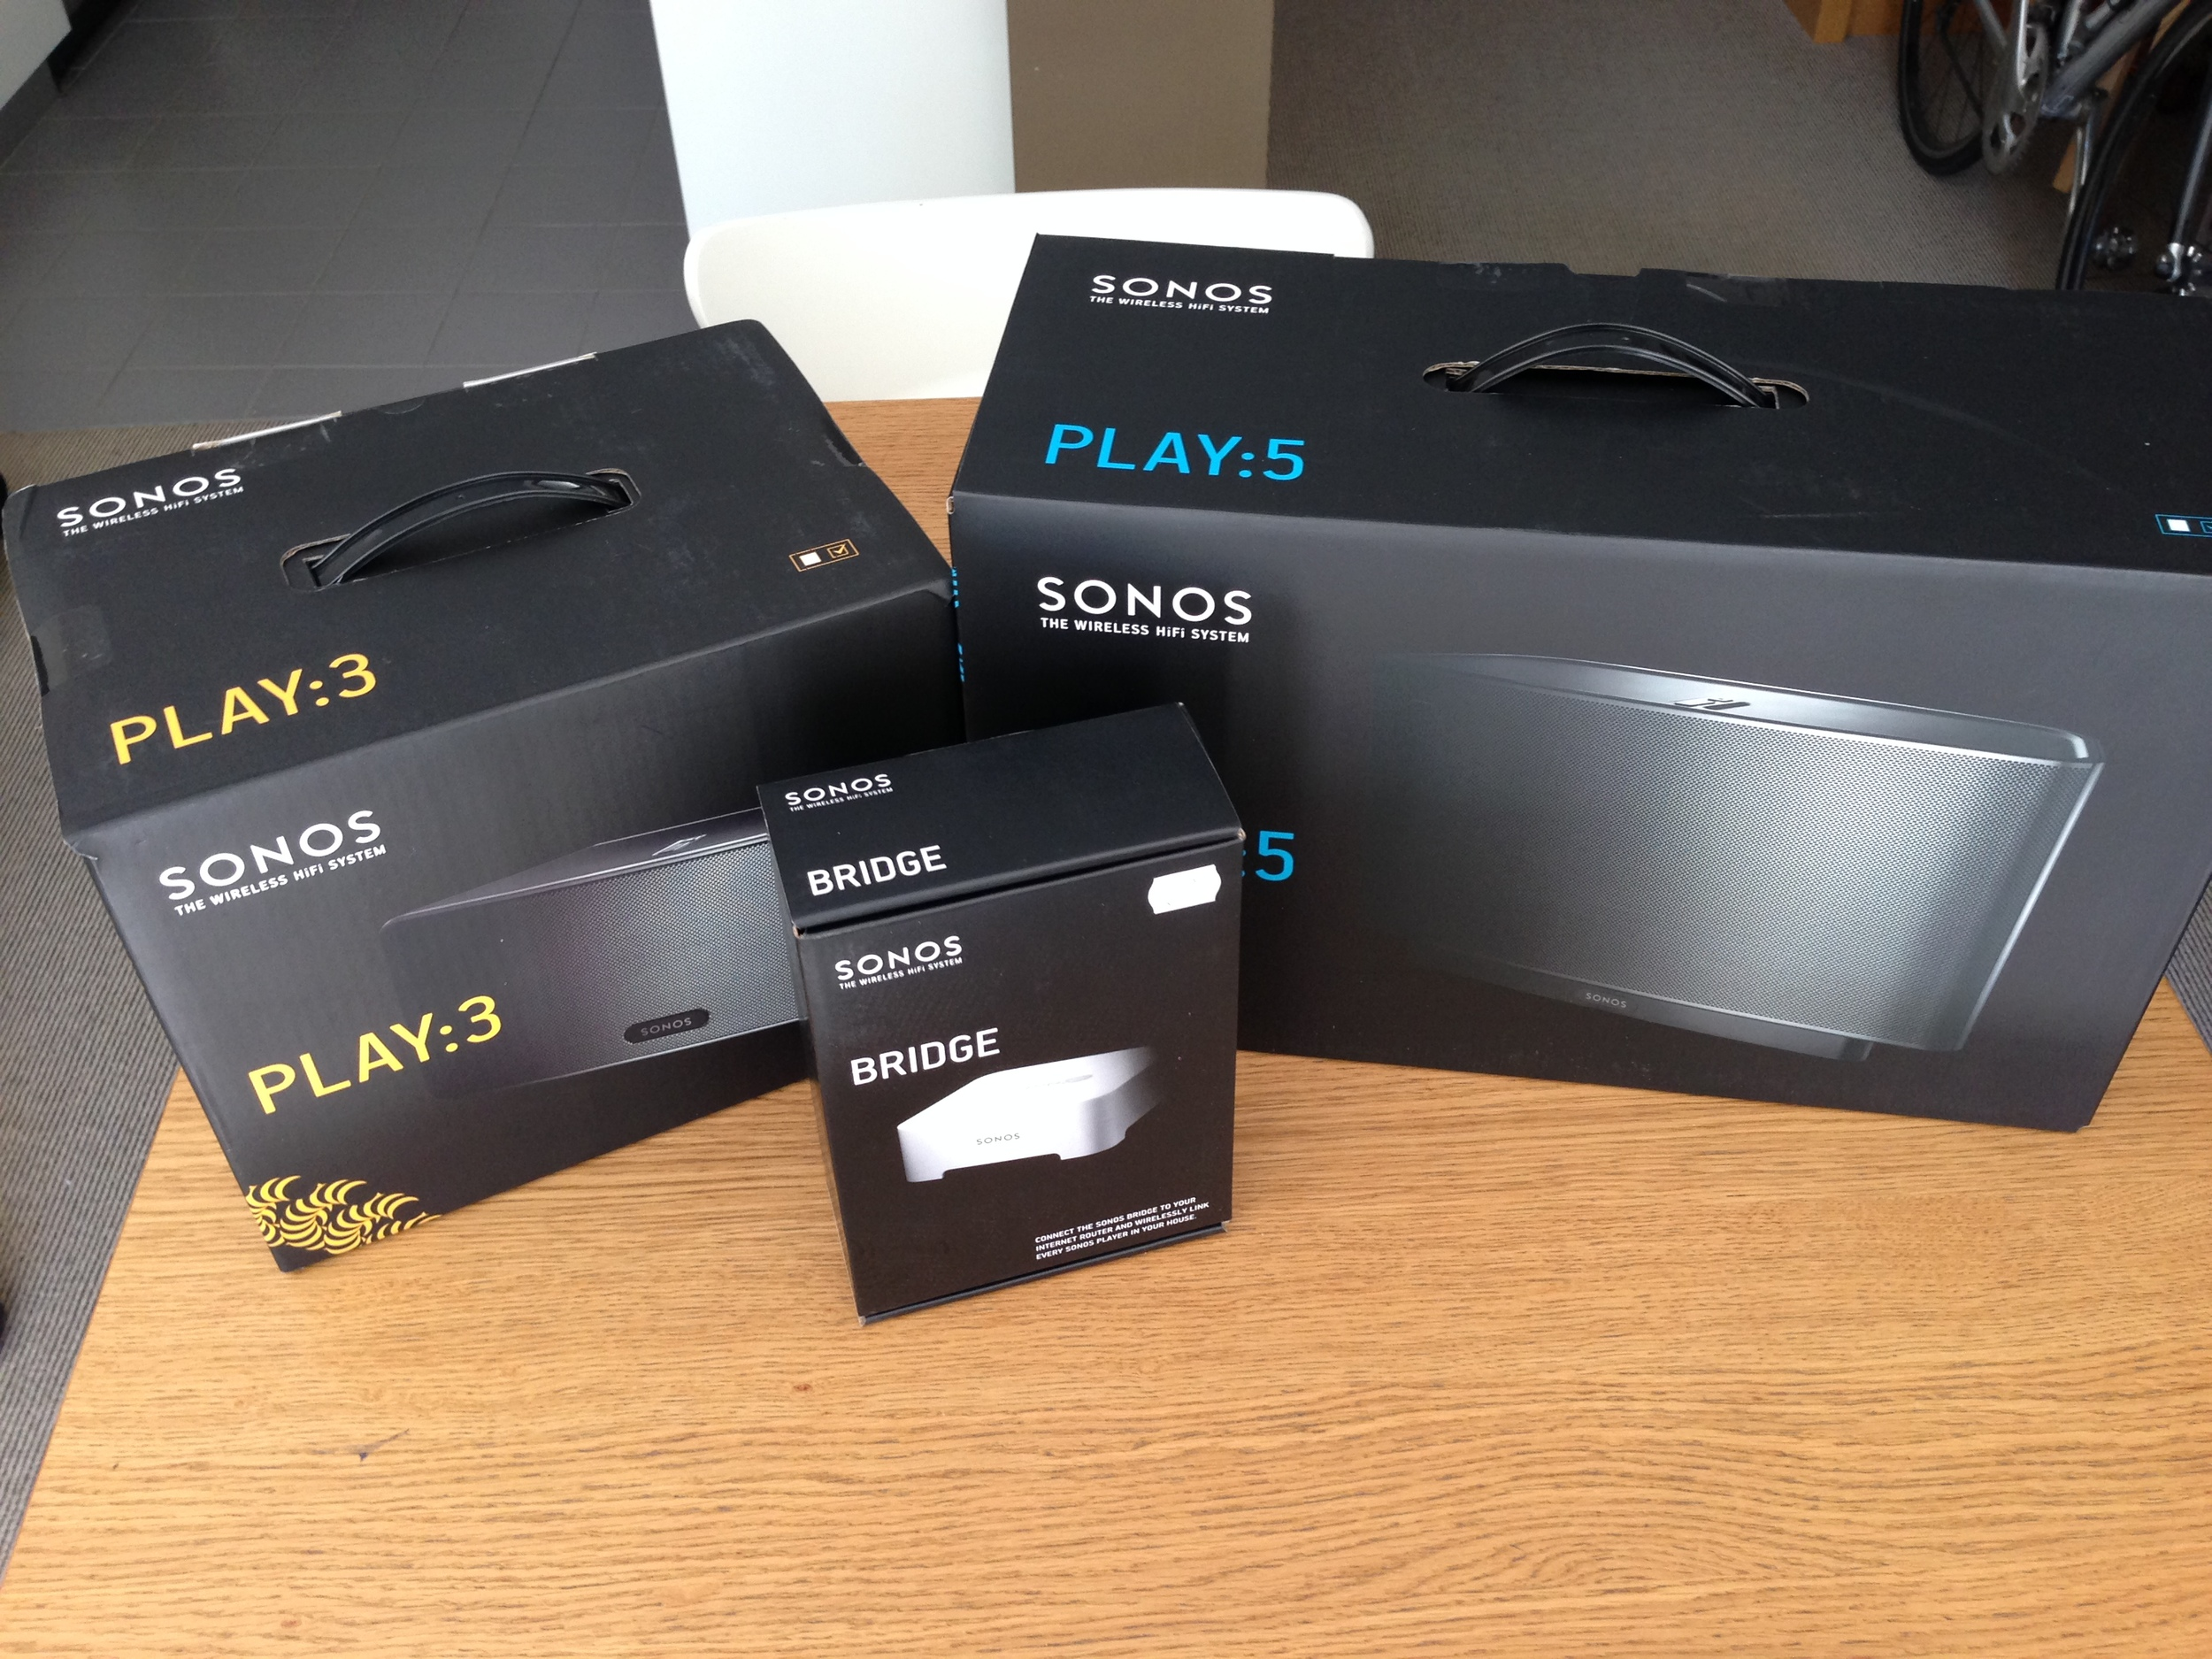 My new toys - SONOS PLAY:5, PLAY:3 and the ZoneBridge